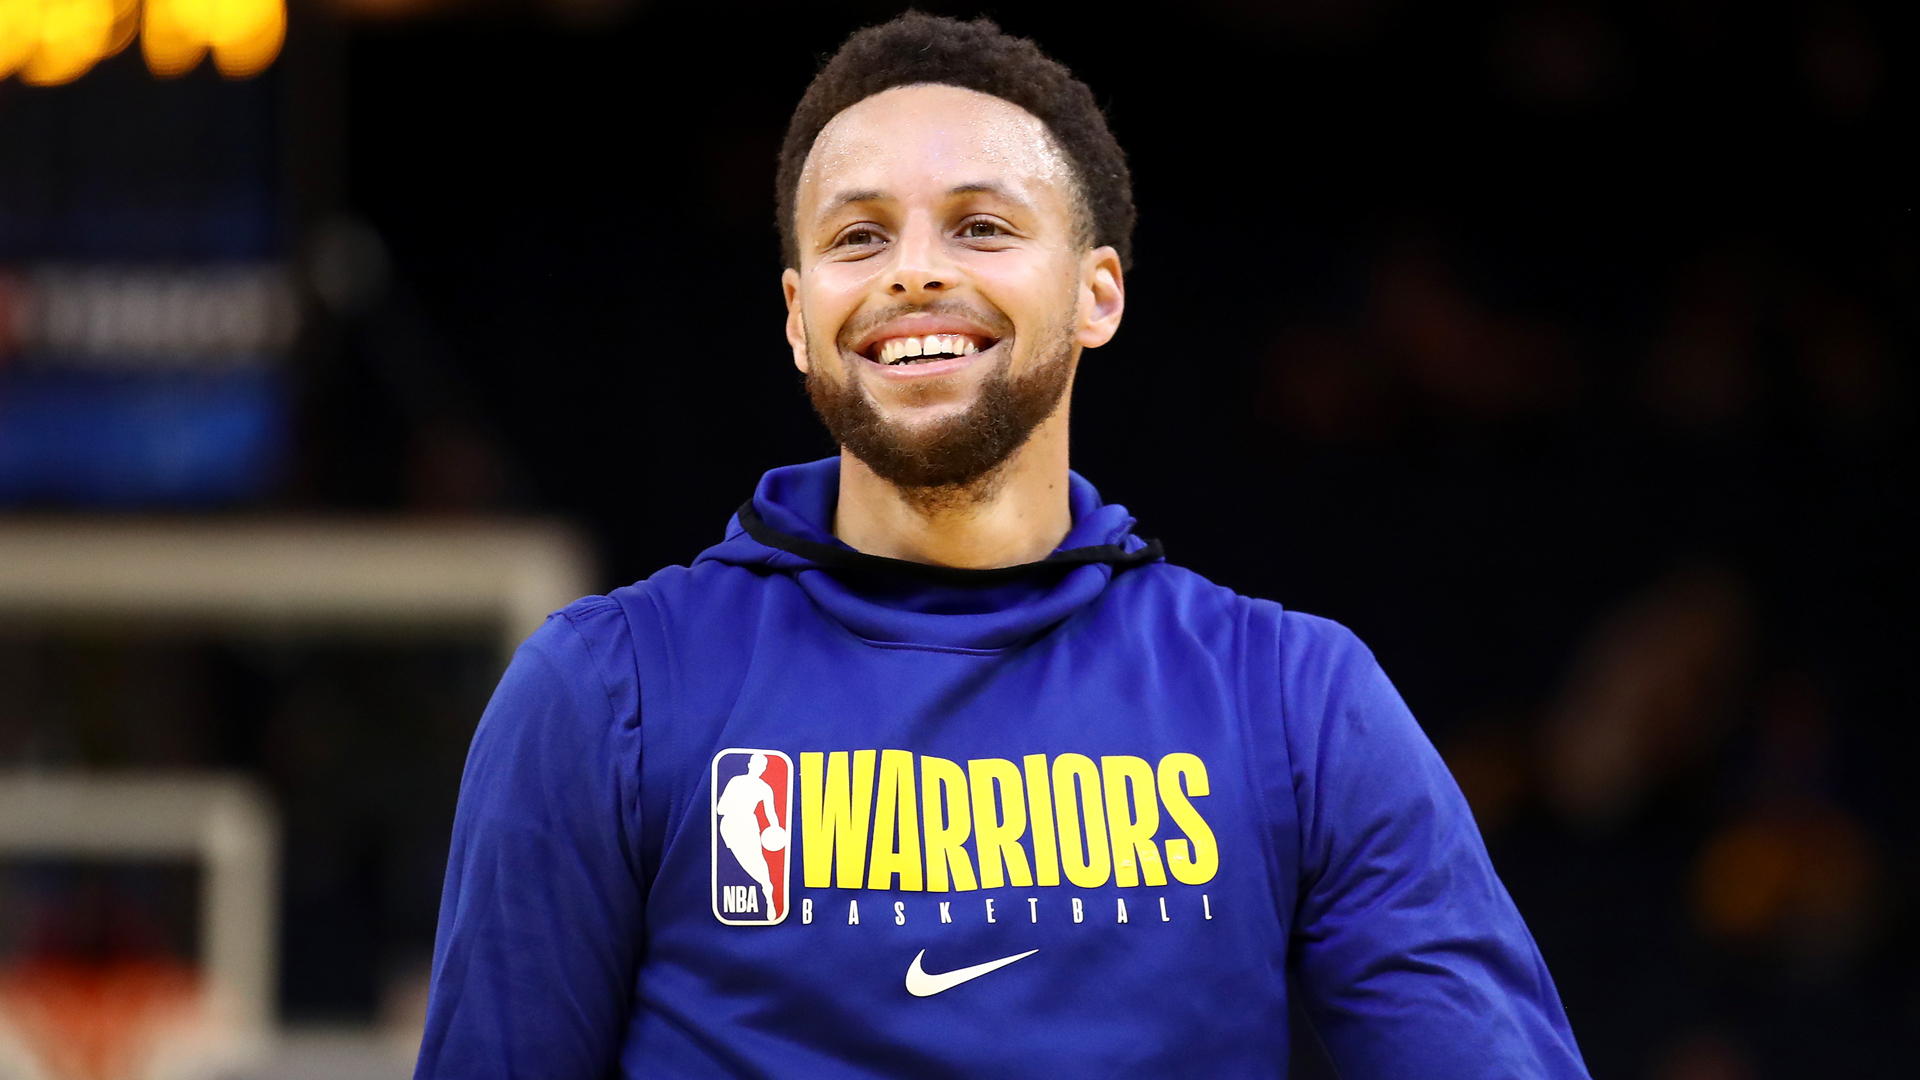 Warriors star Curry 'excited' for season-opening clash with Durant's Nets